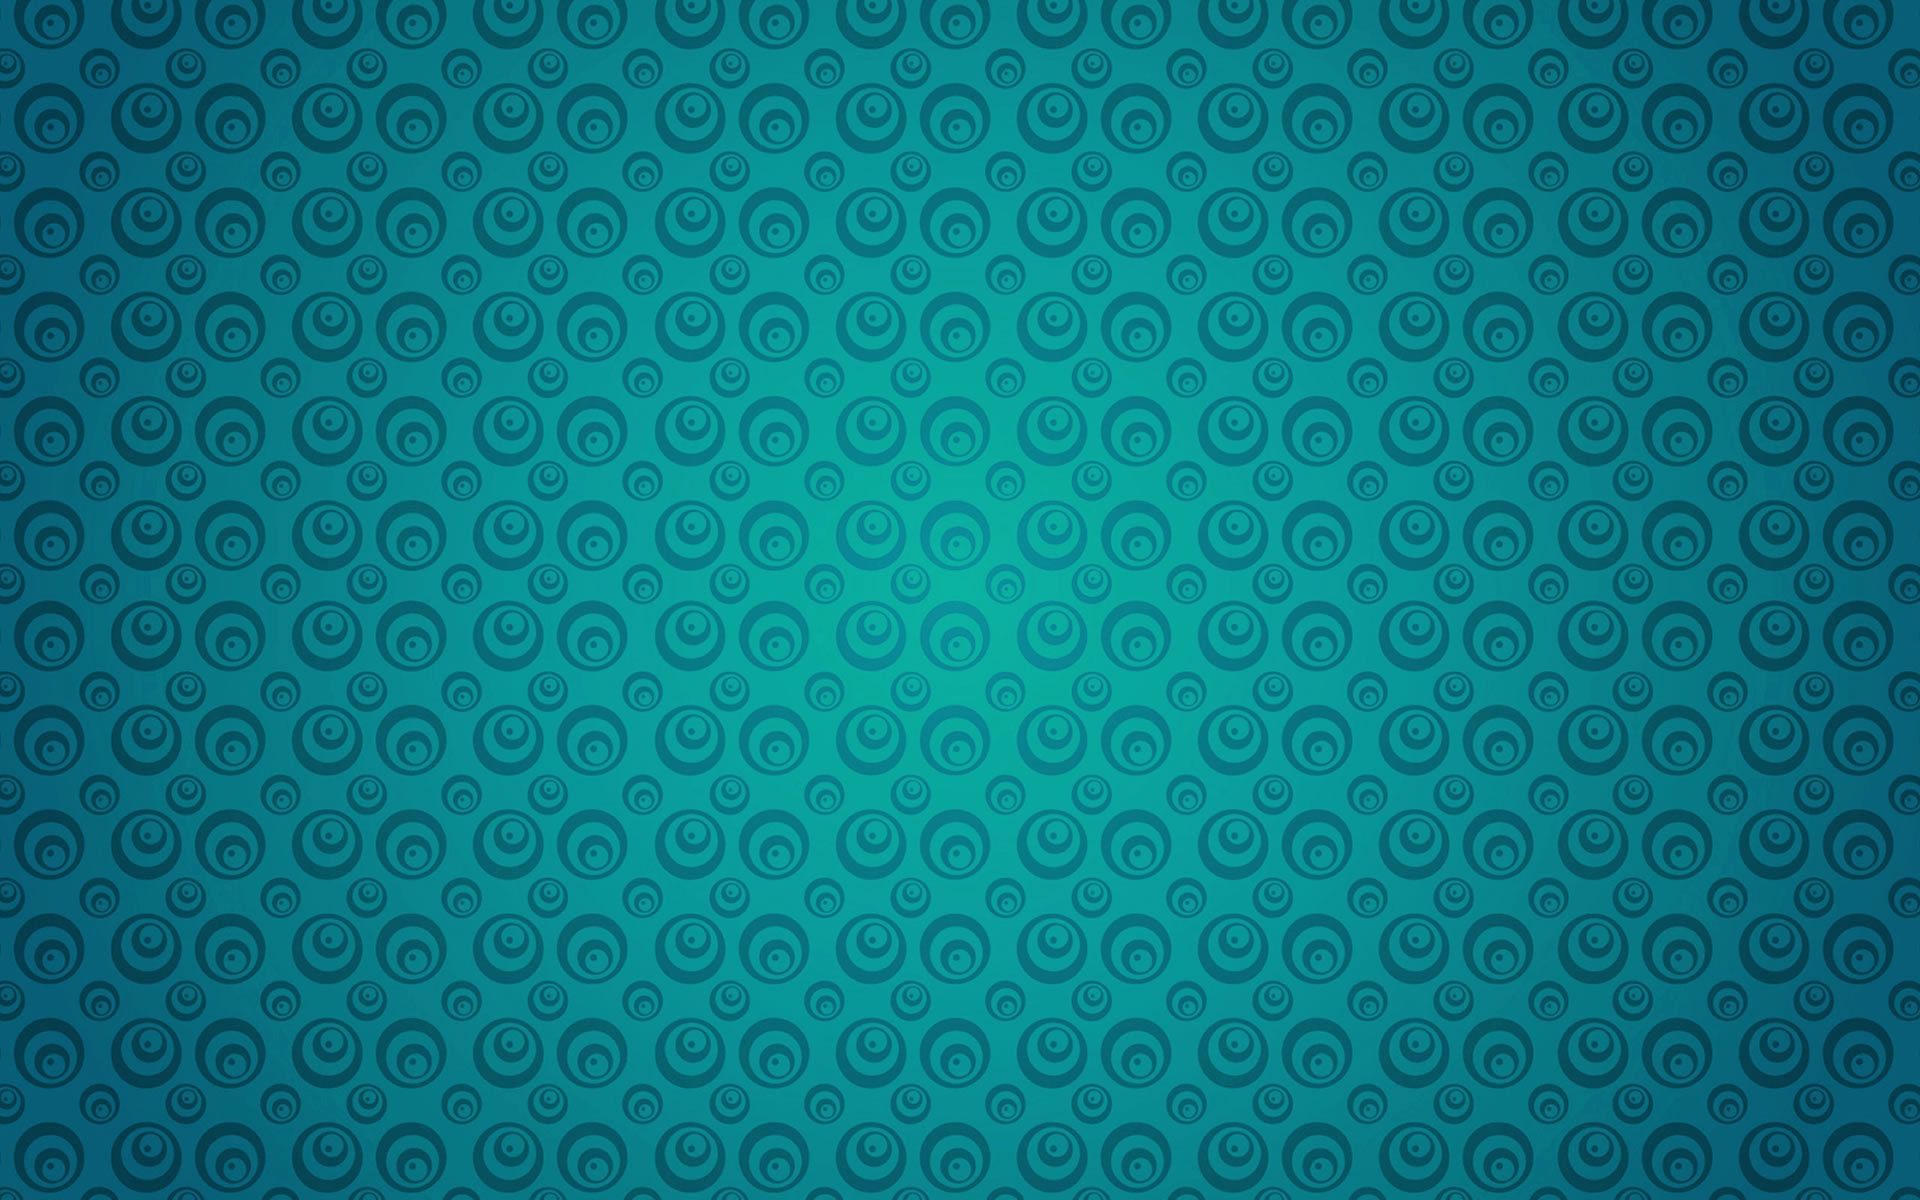 150224 free download Turquoise wallpapers for phone, Textures, Texture, Circles, Surface, Patterns Turquoise images and screensavers for mobile